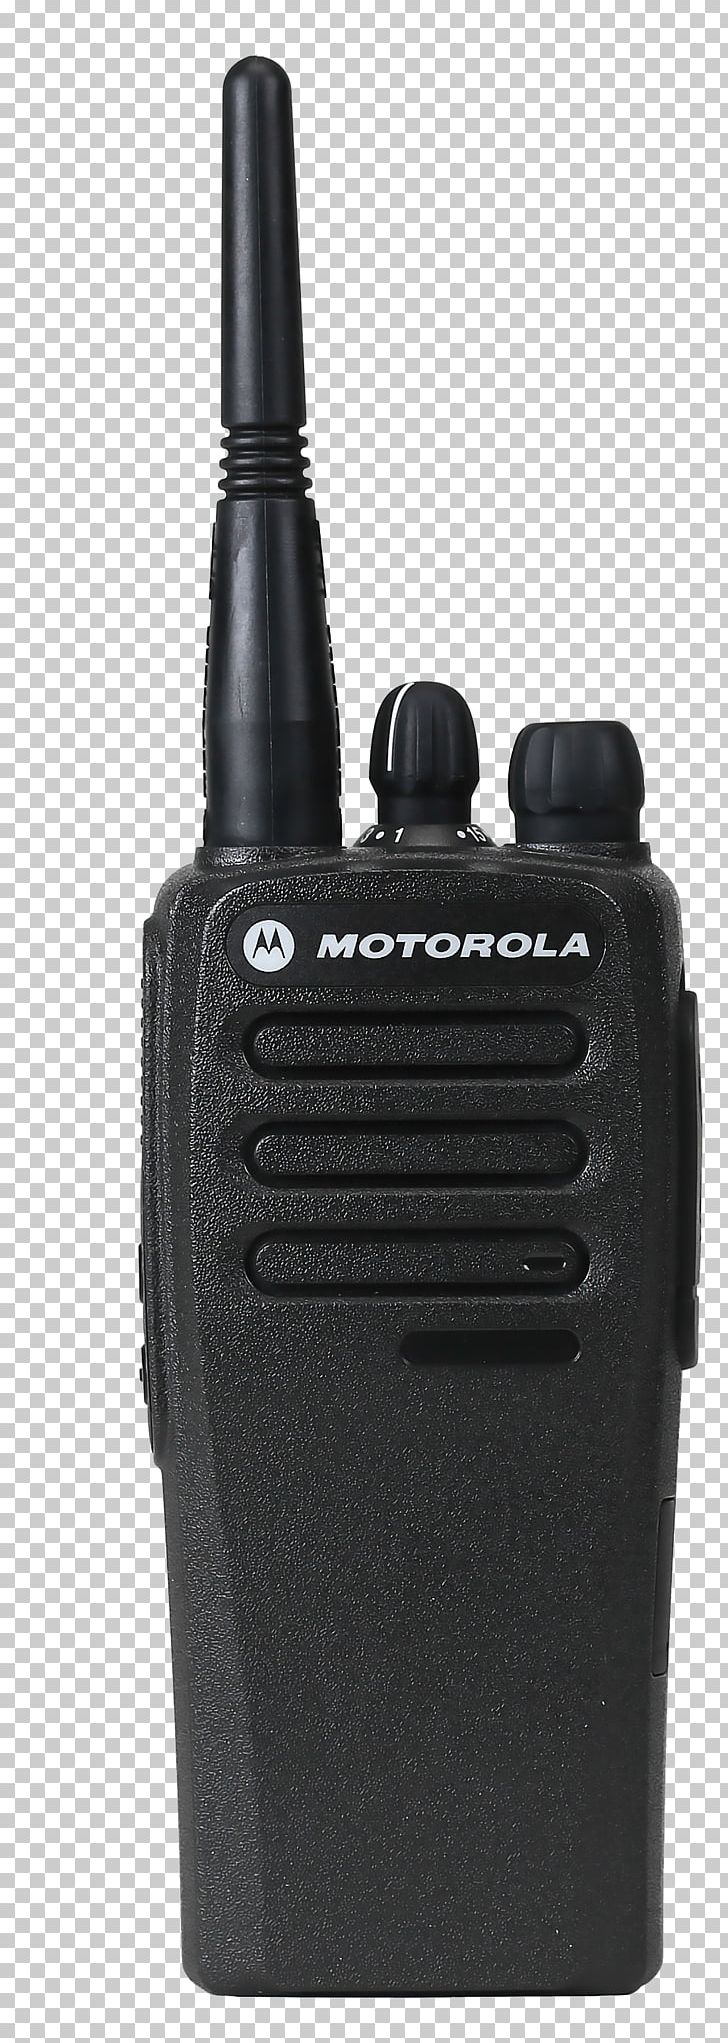 Two-way Radio Motorola Solutions Wireless PNG, Clipart, Analogue Electronics, Battery, Communication Device, Digital Data, Electronic Device Free PNG Download